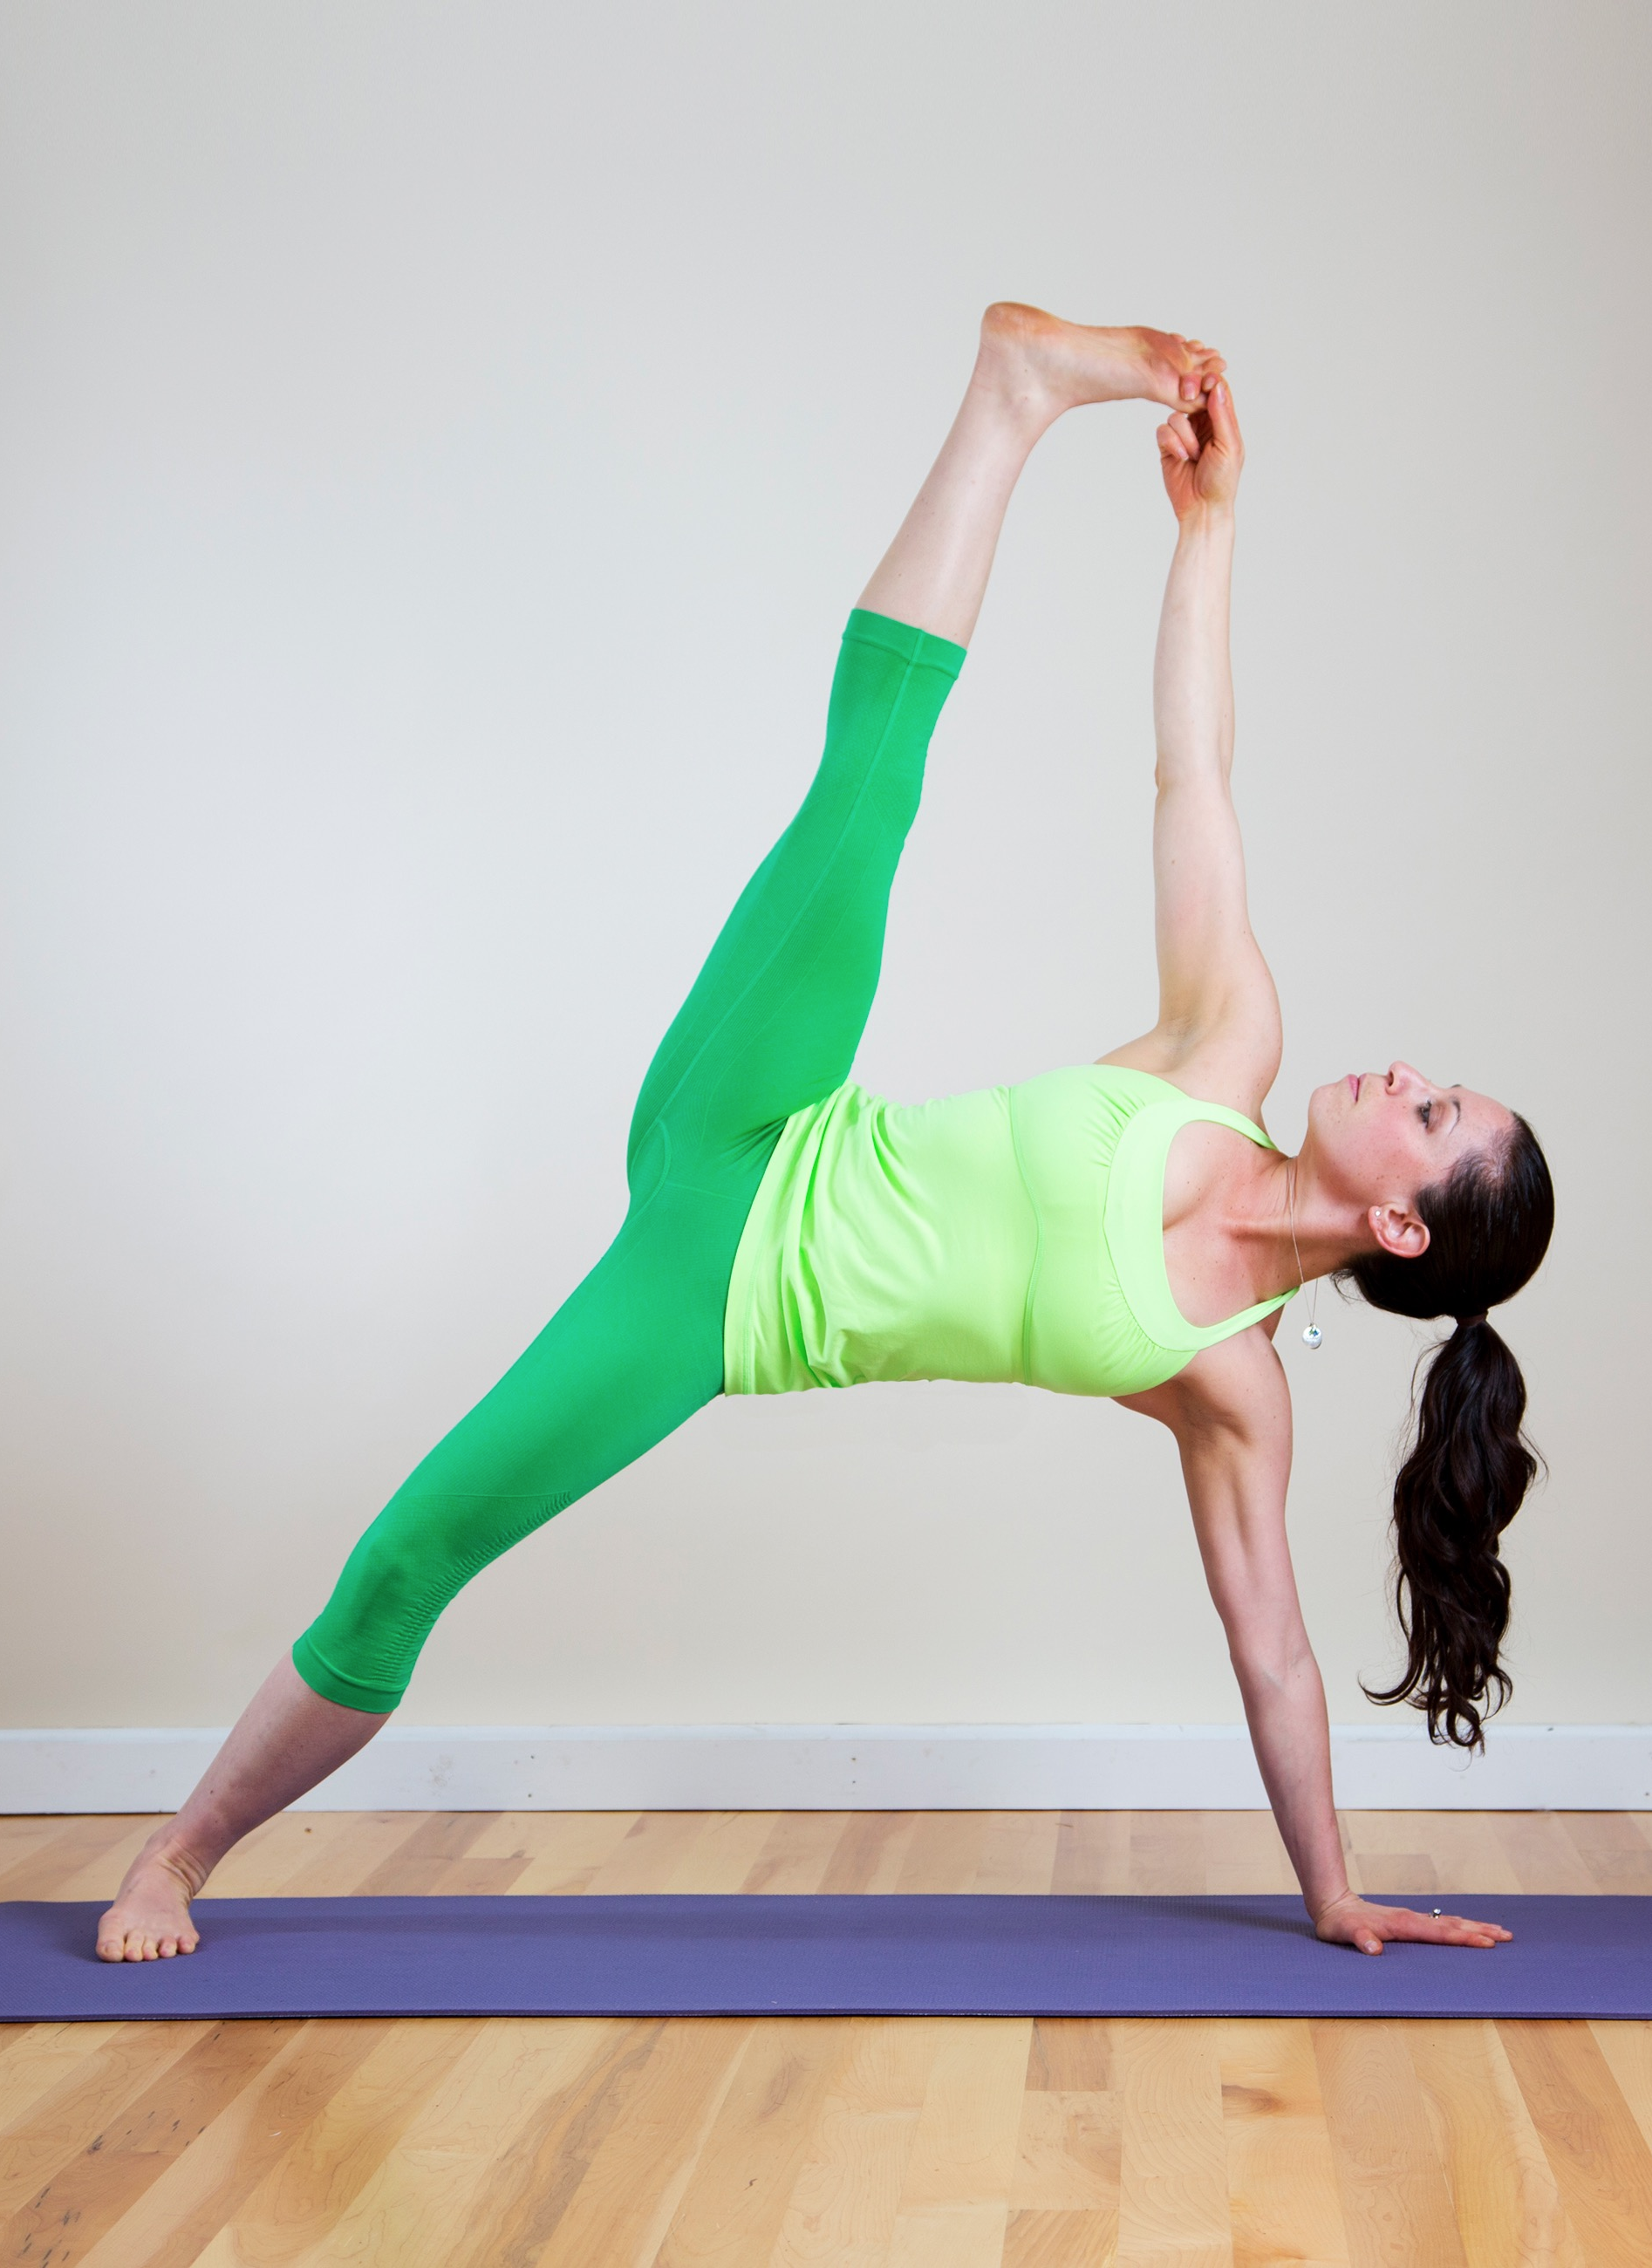 AnEffective Yoga Sequence That Can Sculpt Your Body and Clear Your Mind